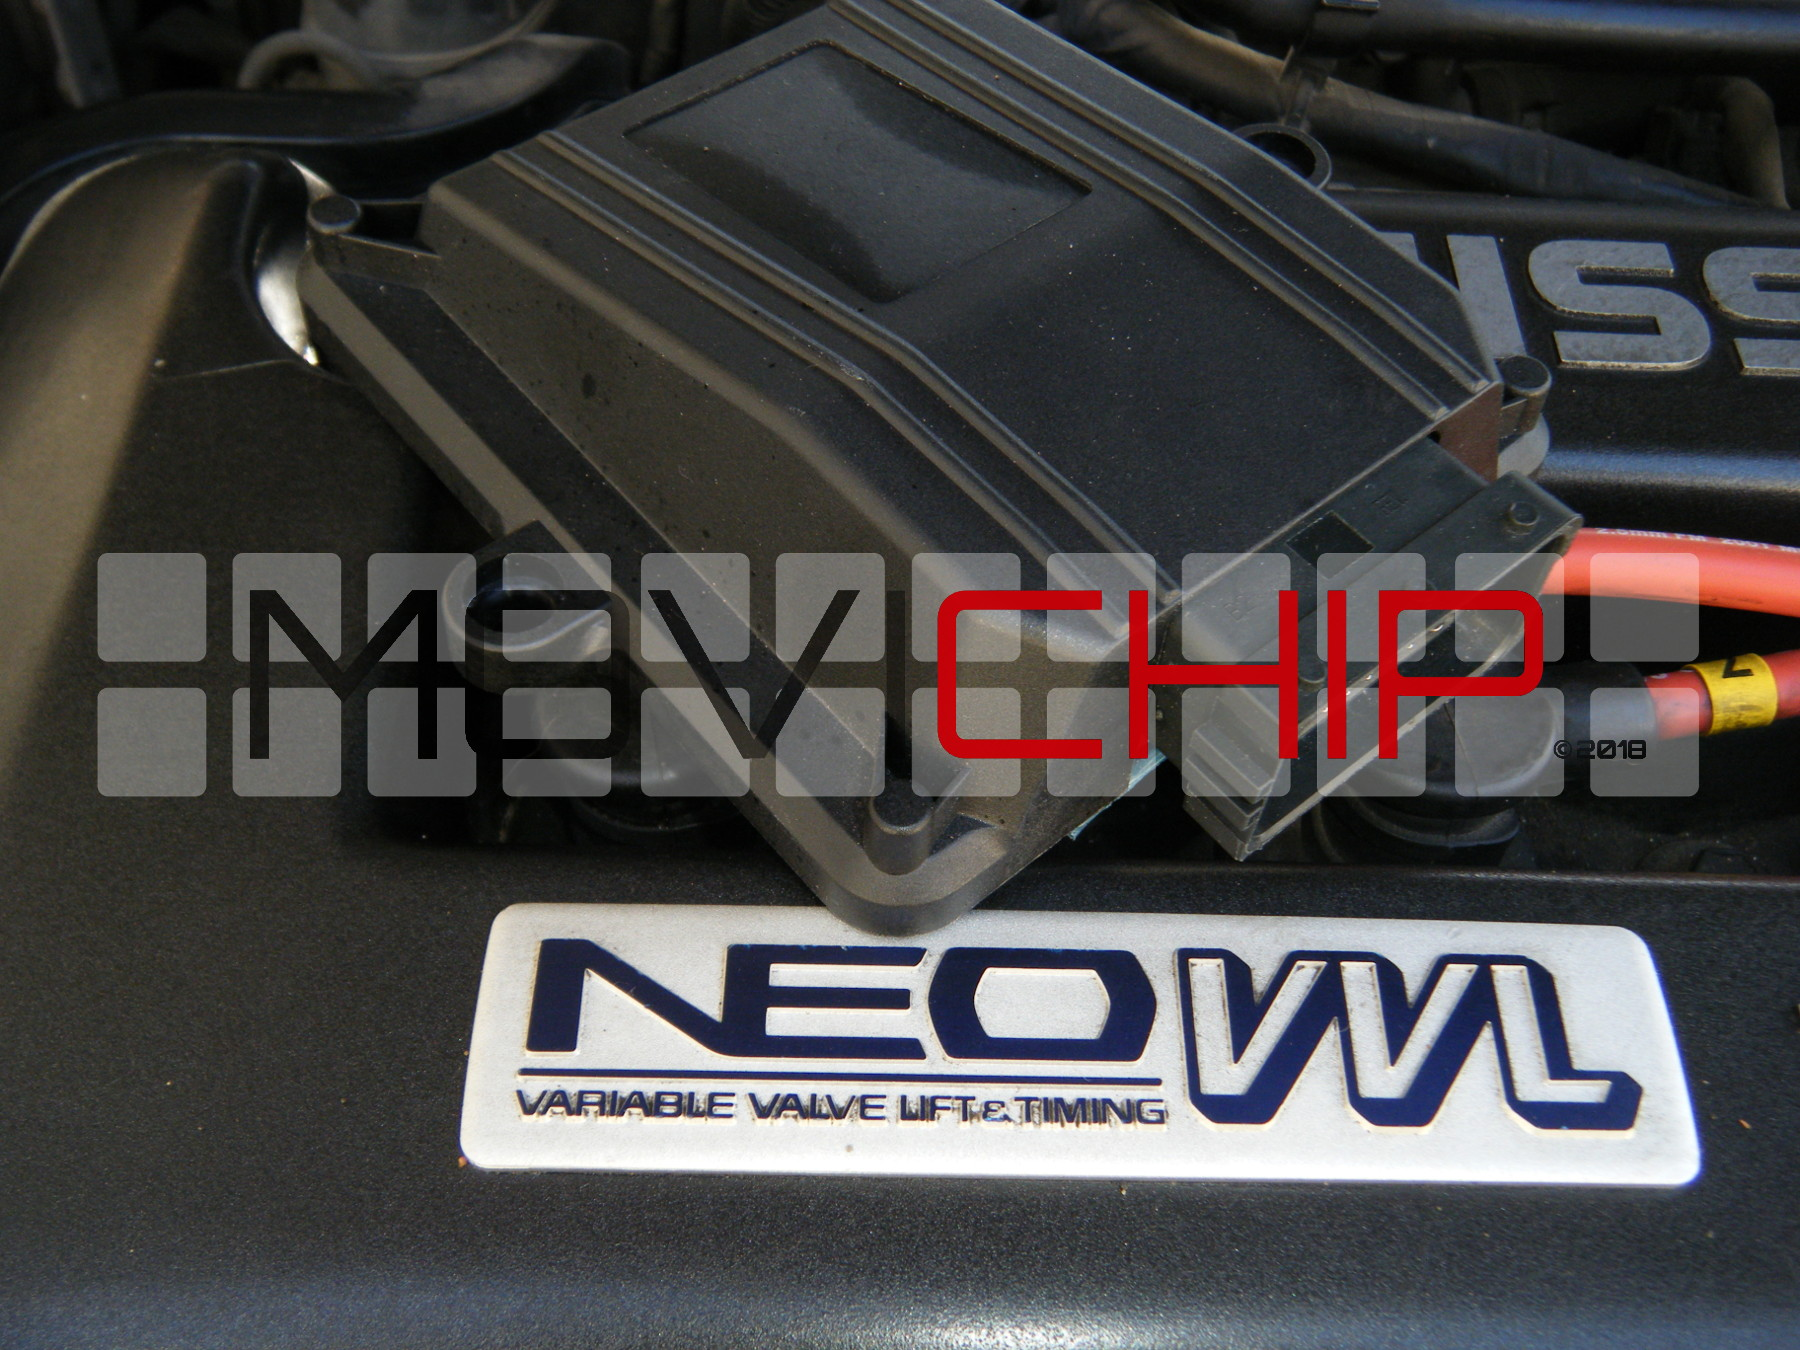 MoviChip CamSwitch Unit. Mounts in engine bay